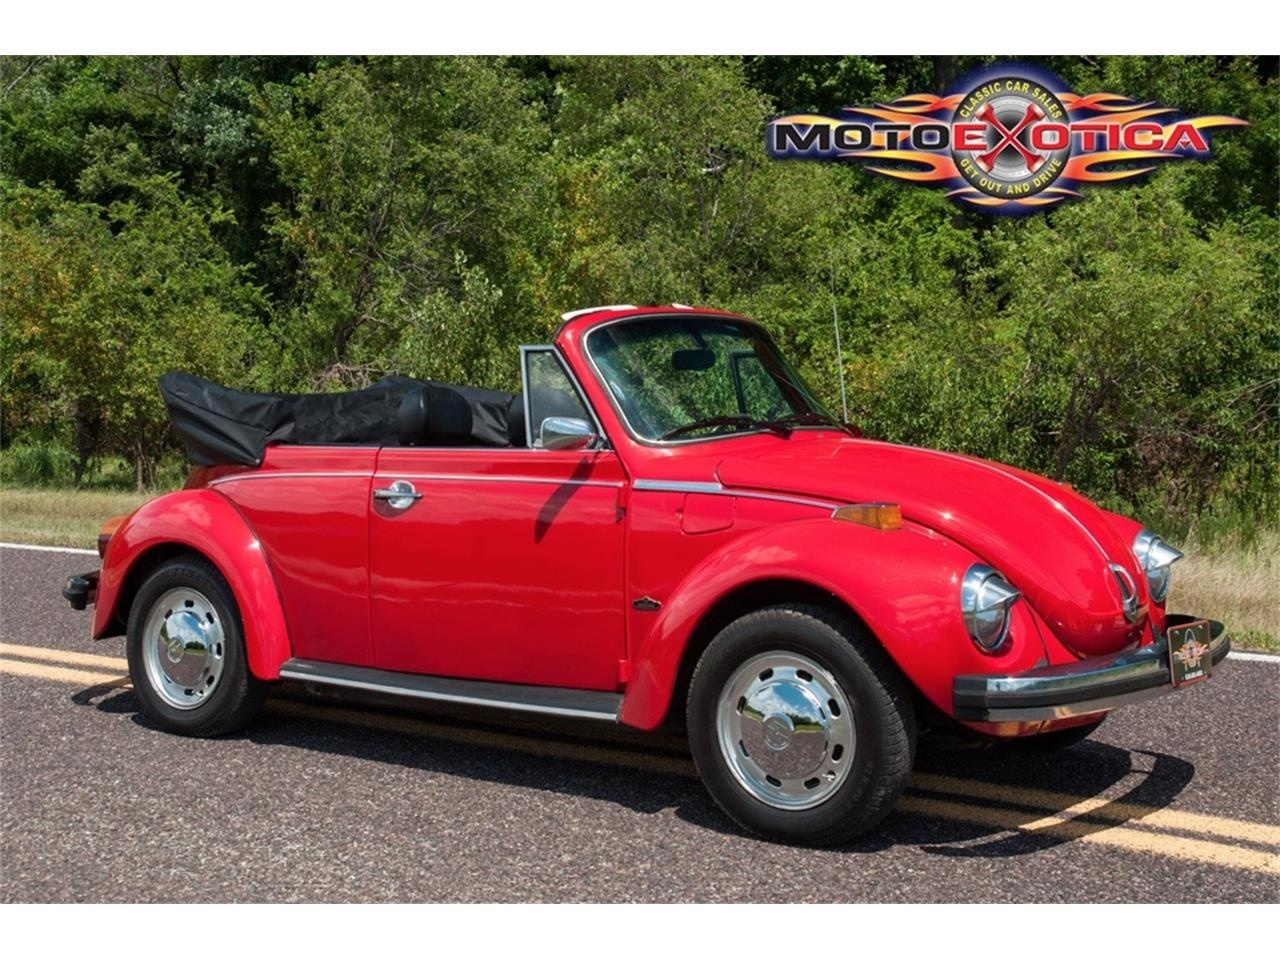 Large Picture of '78 Volkswagen Super Beetle - $17,900.00 Offered by MotoeXotica Classic Cars - LG5A